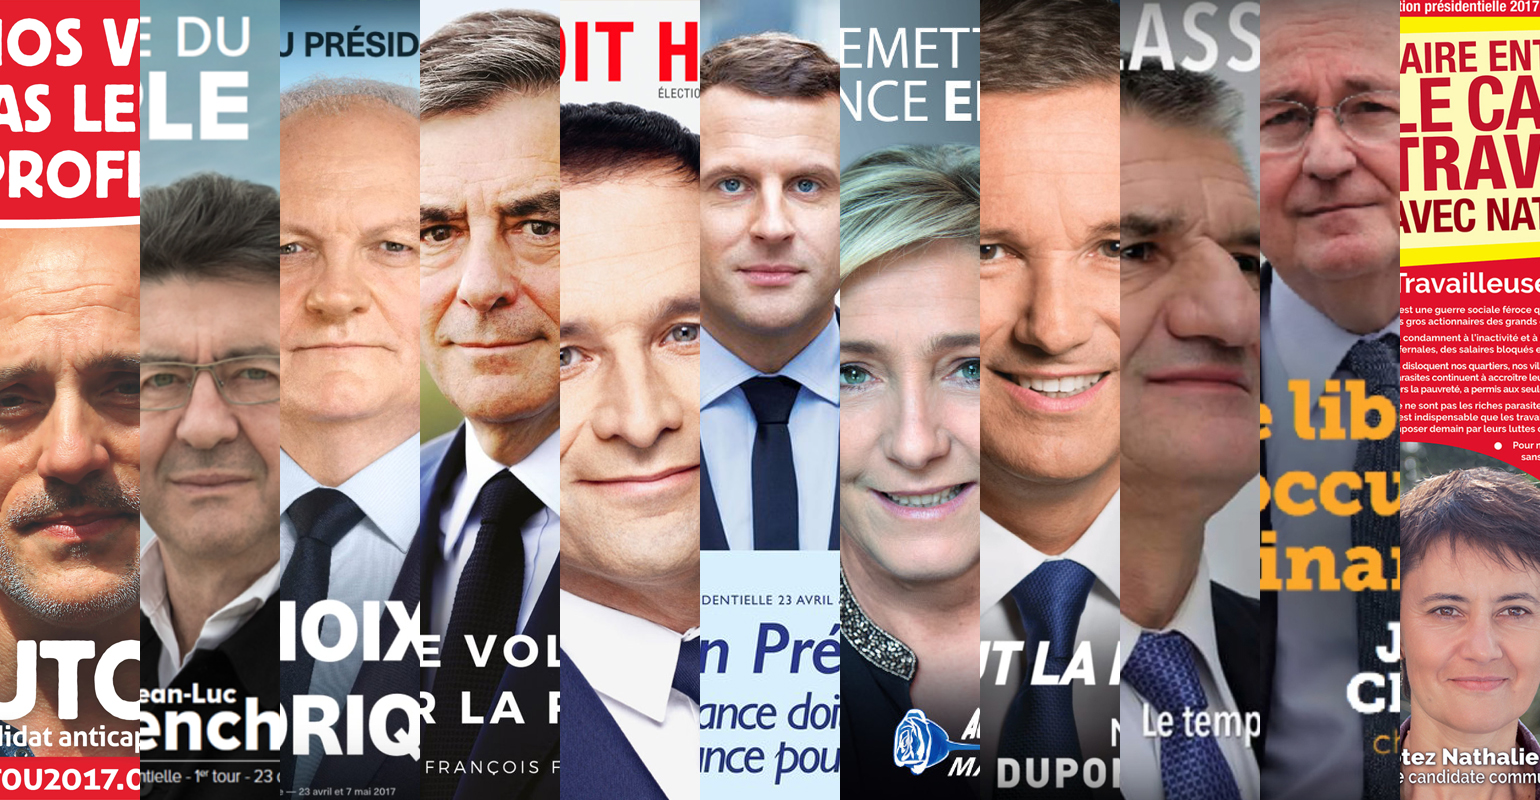 affiches2017